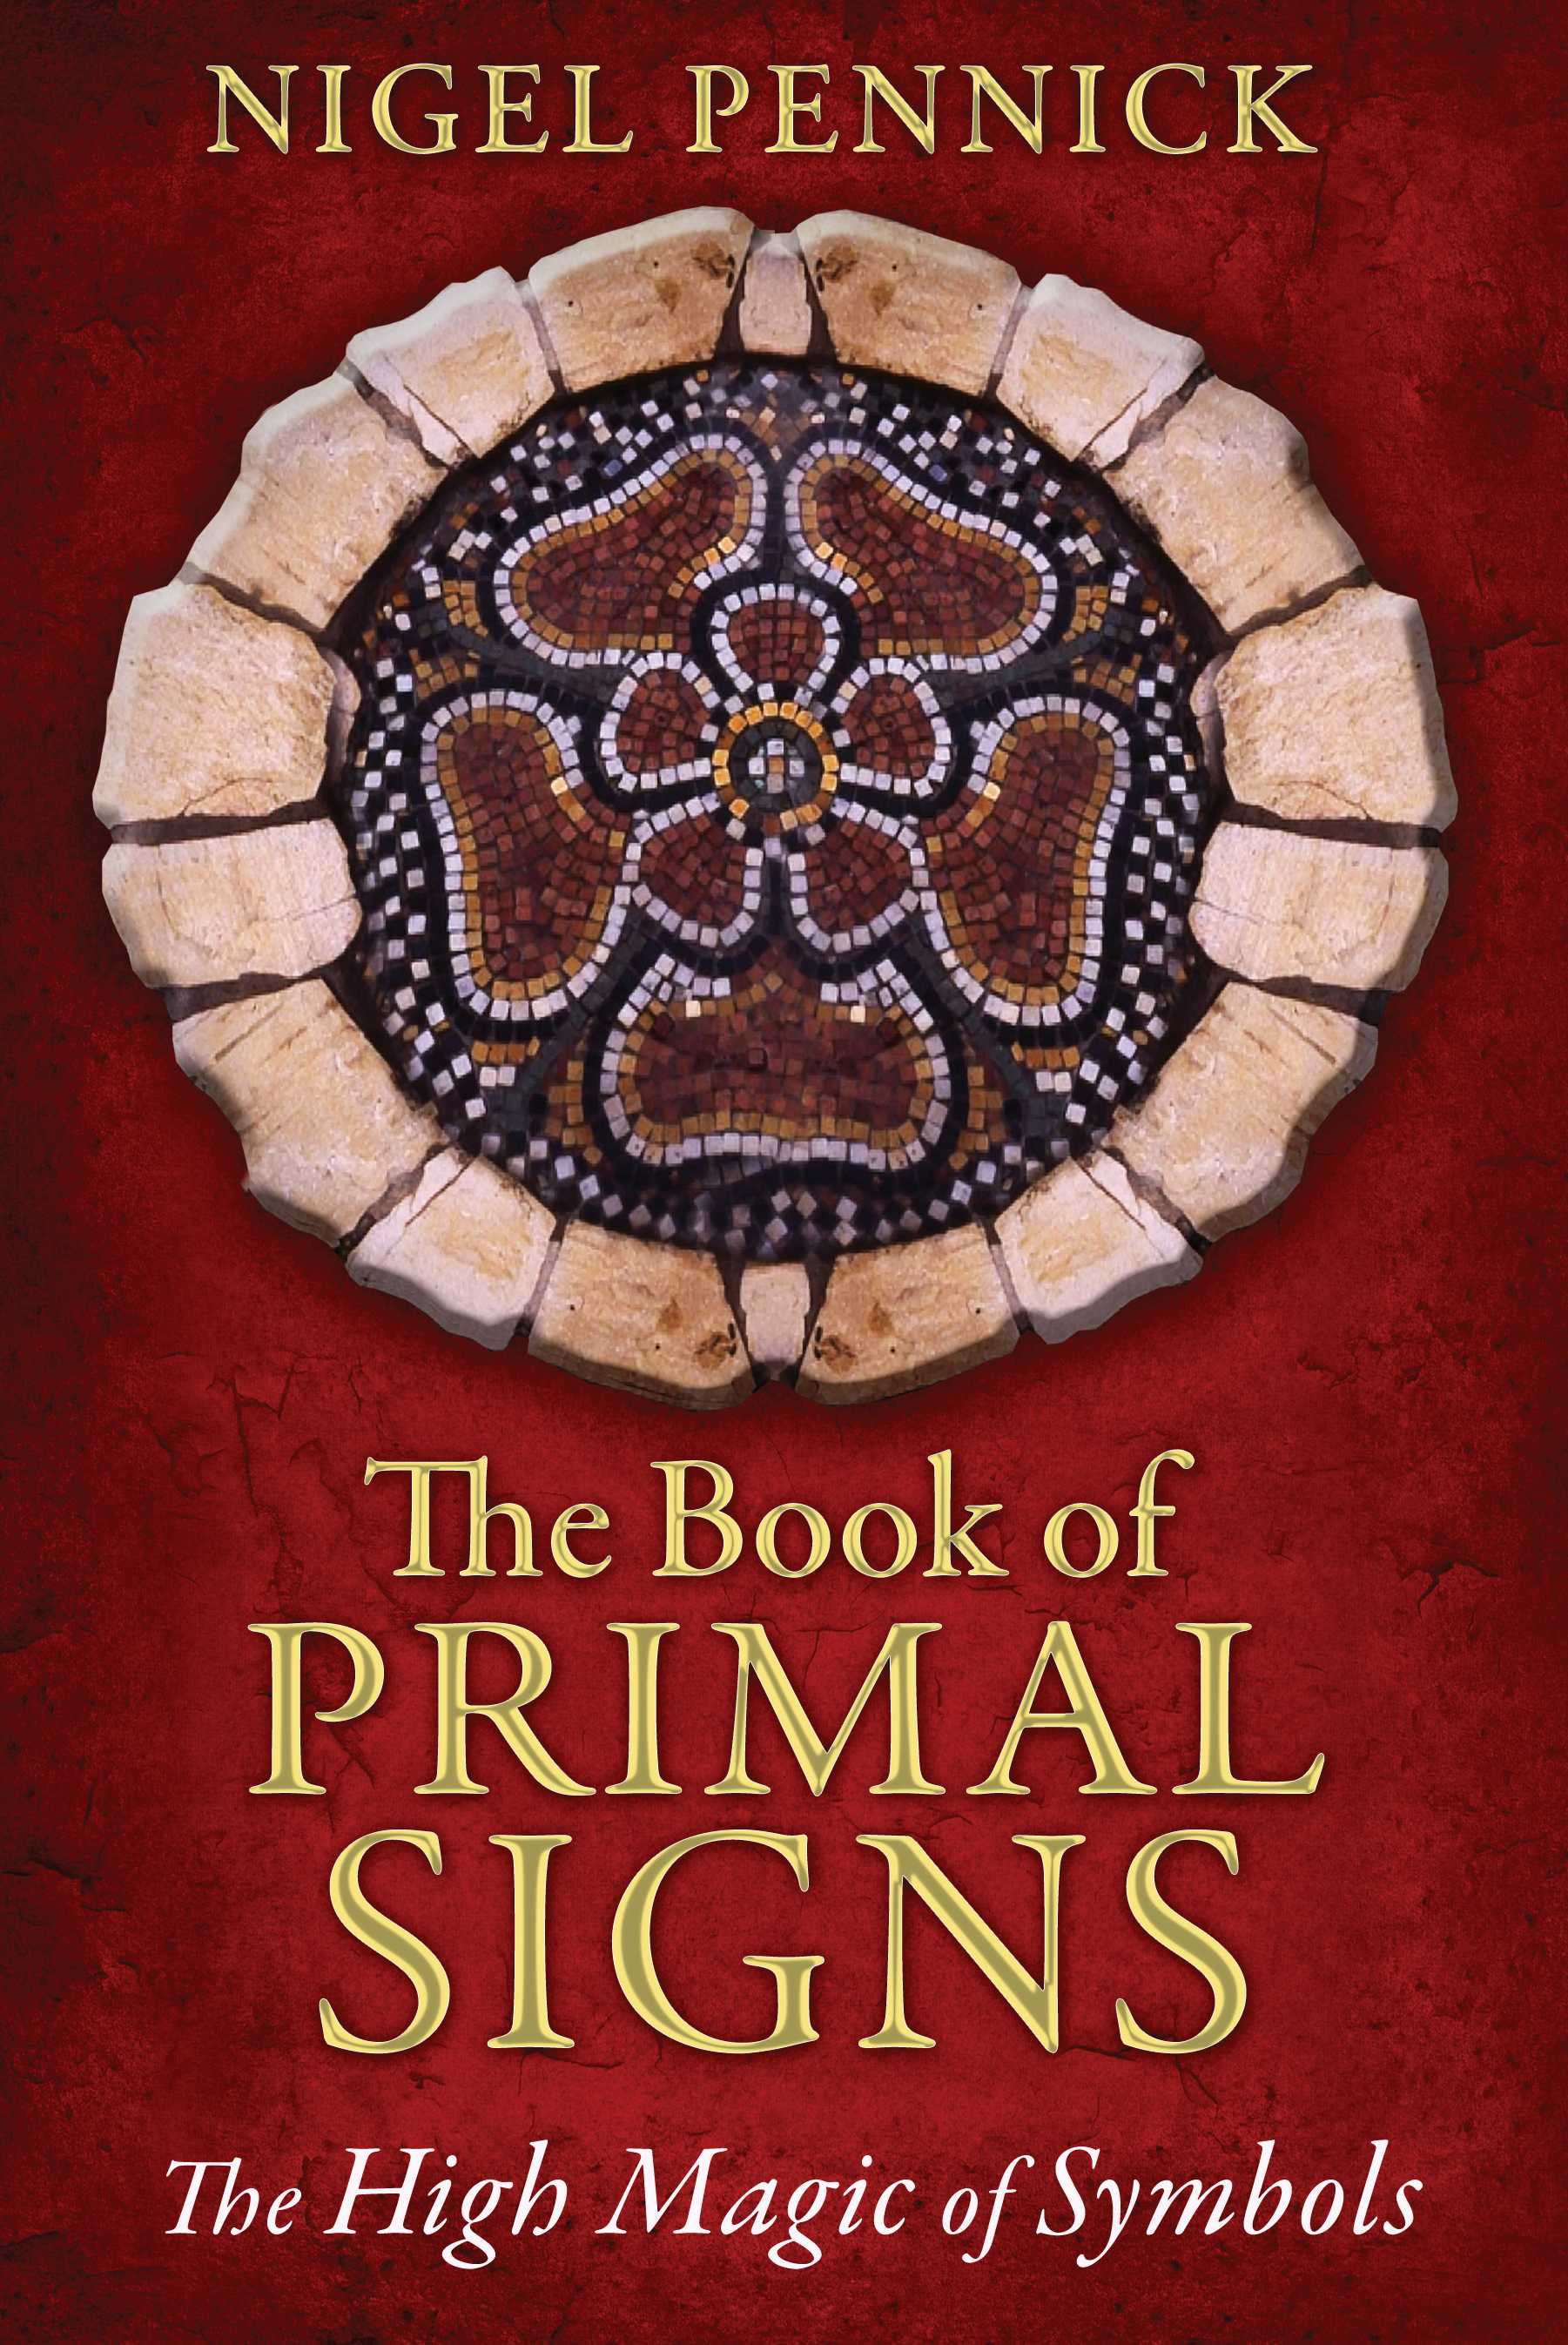 The book of primal signs 9781620553152 hr